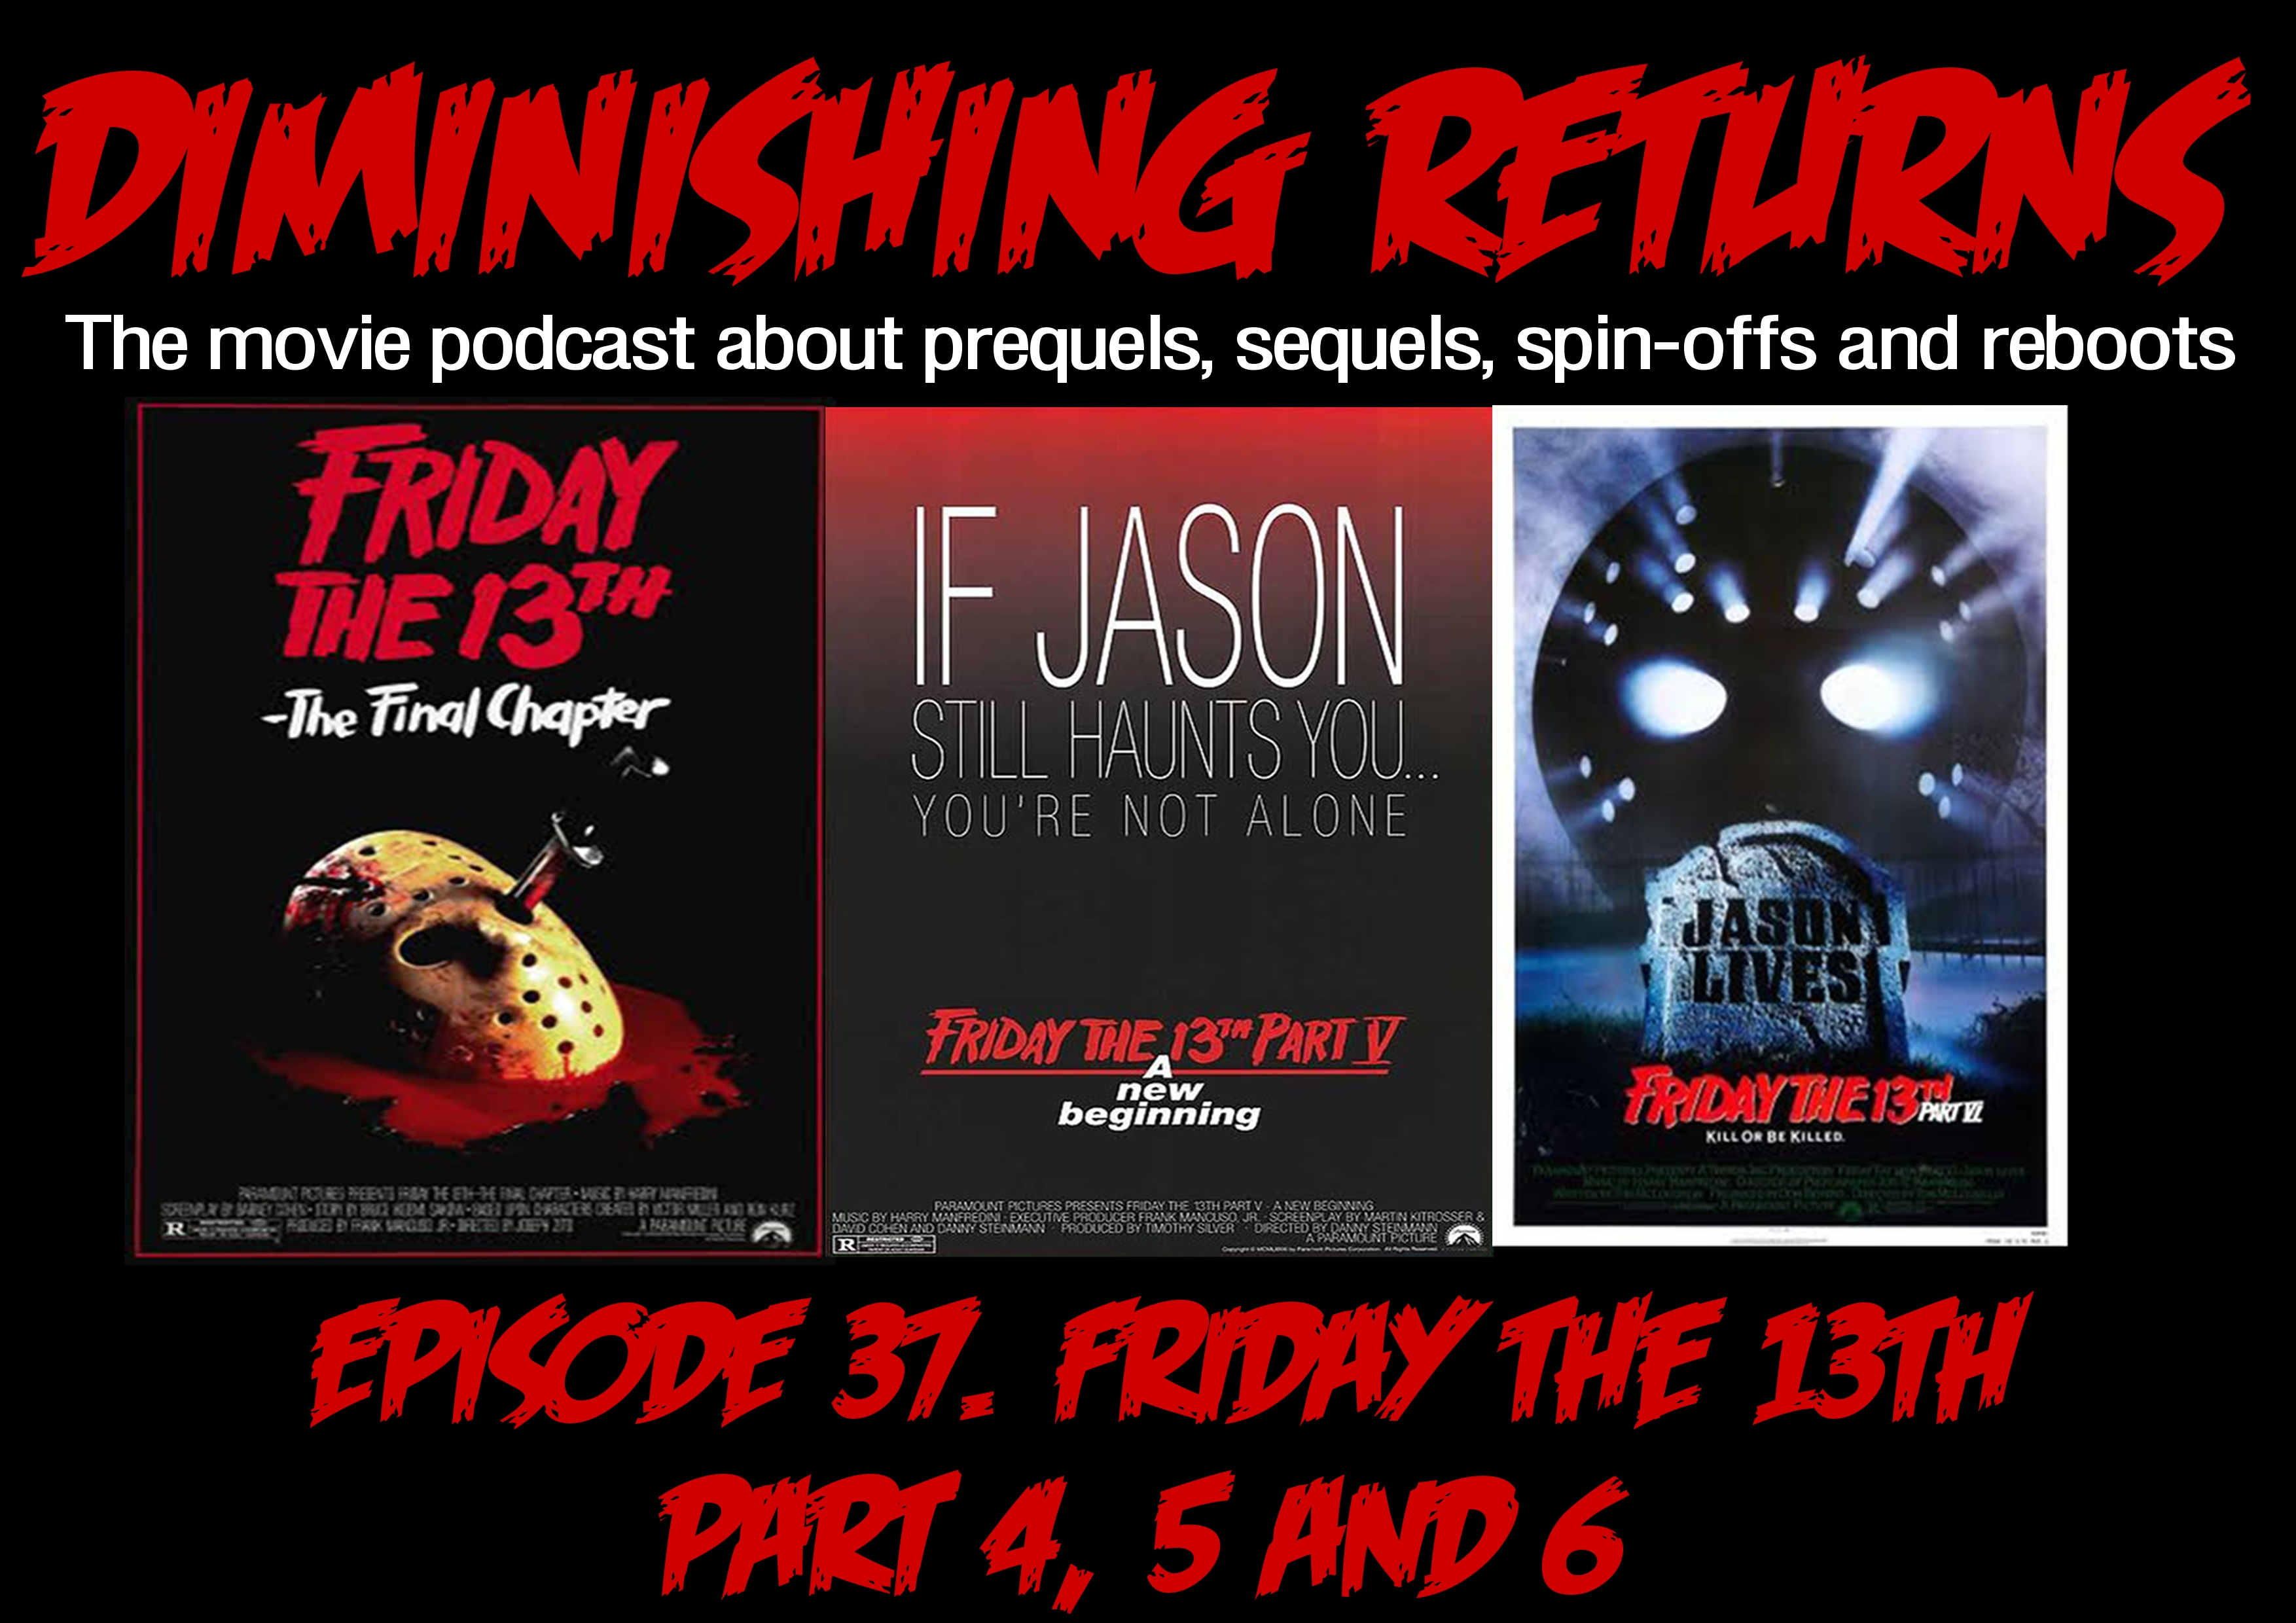 Diminishing Returns Episode 37 Friday the 13th Part 4 5 & 6